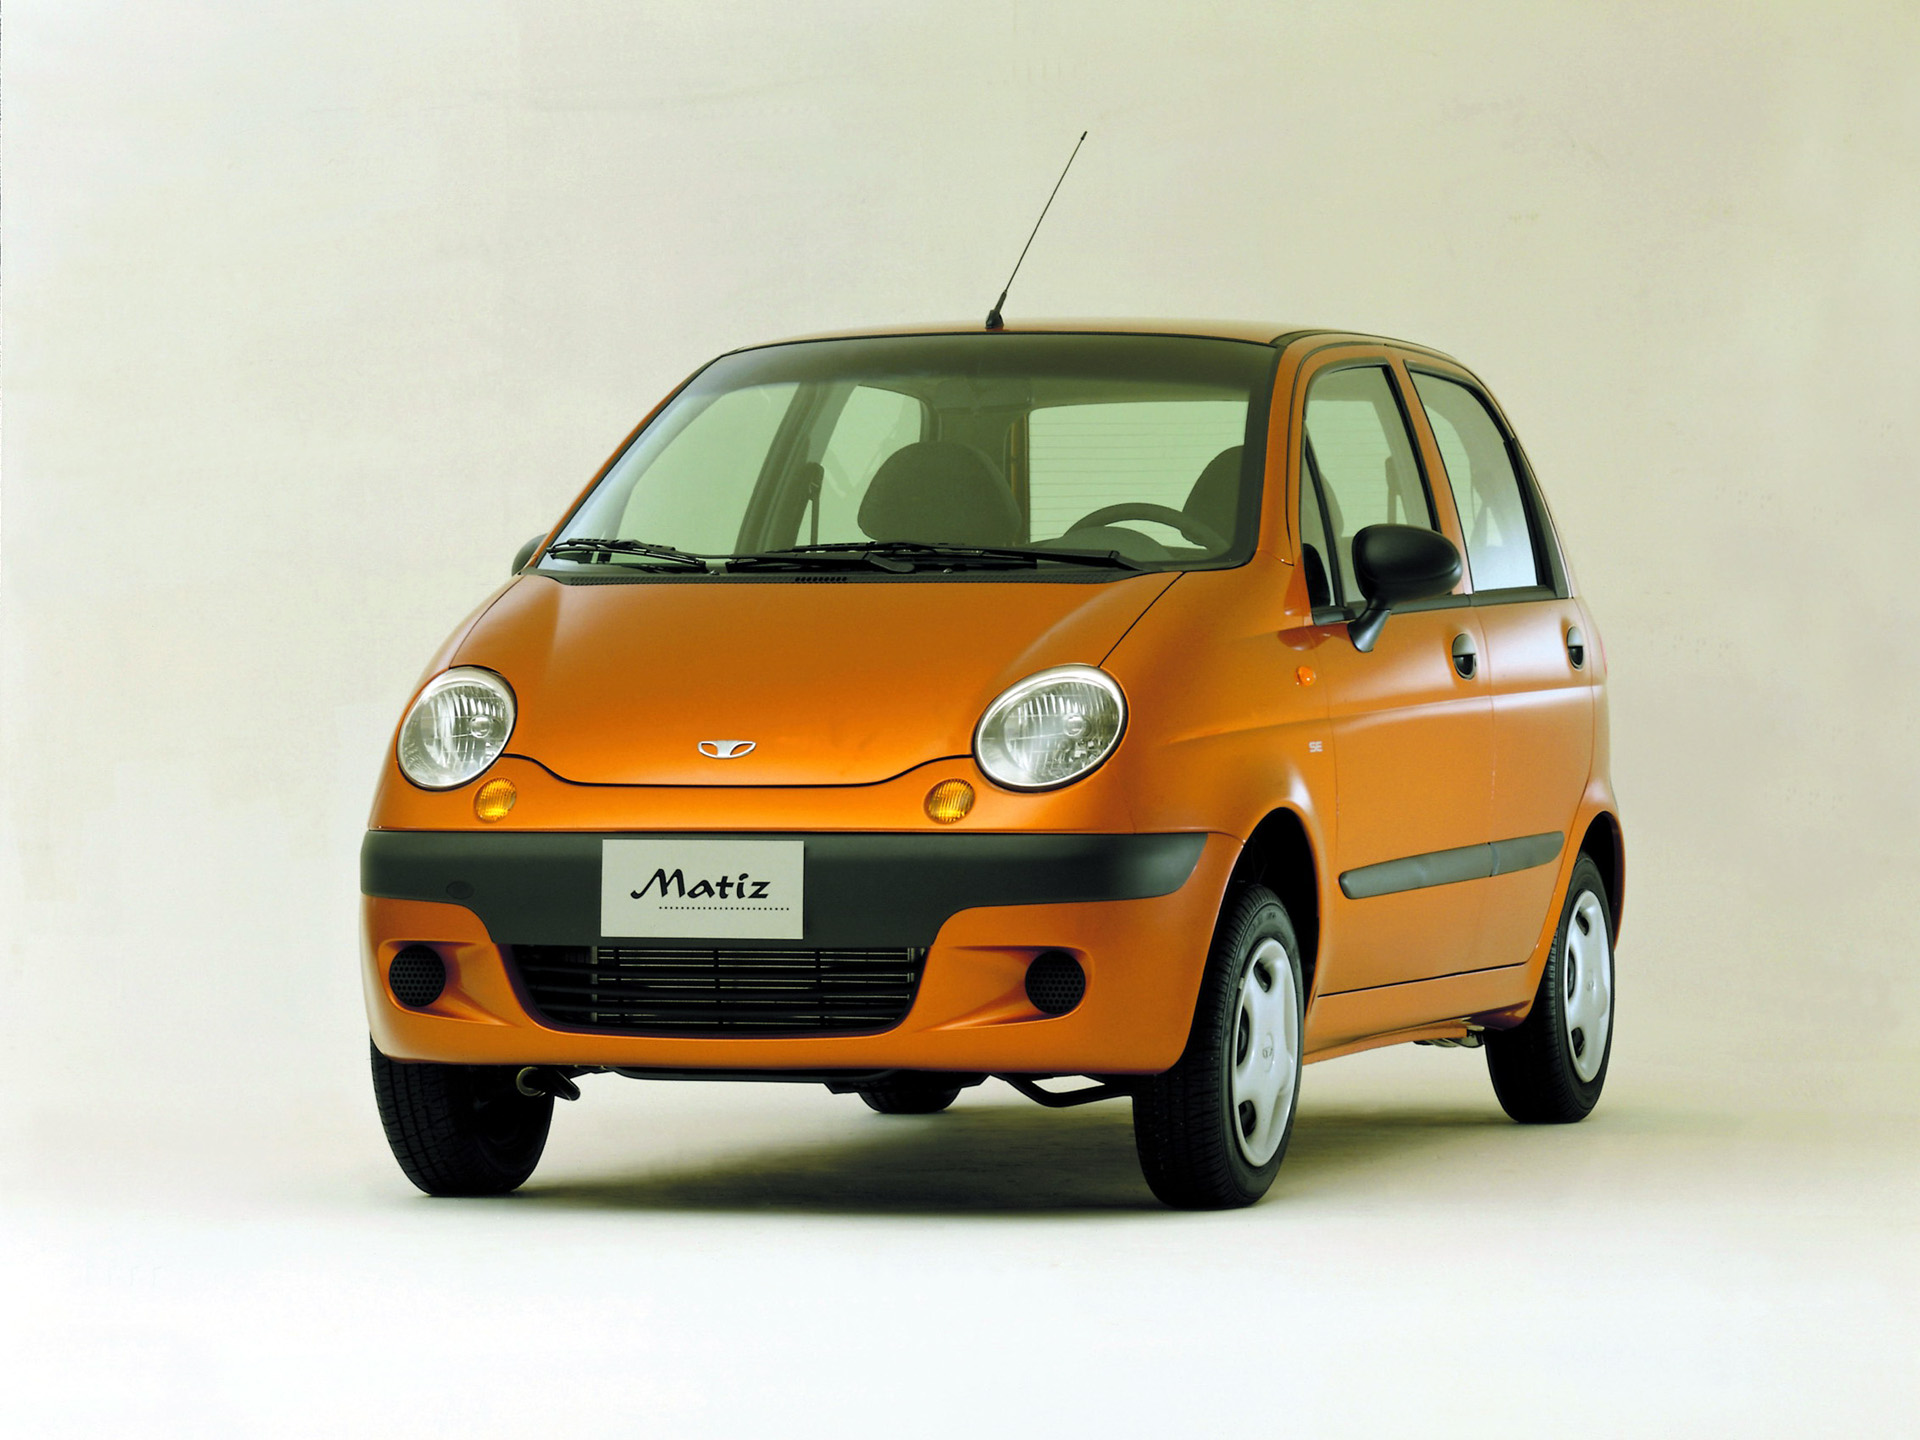 3dtuning of daewoo matiz m 150 5 door hatchback 2000 unique on line car. Black Bedroom Furniture Sets. Home Design Ideas